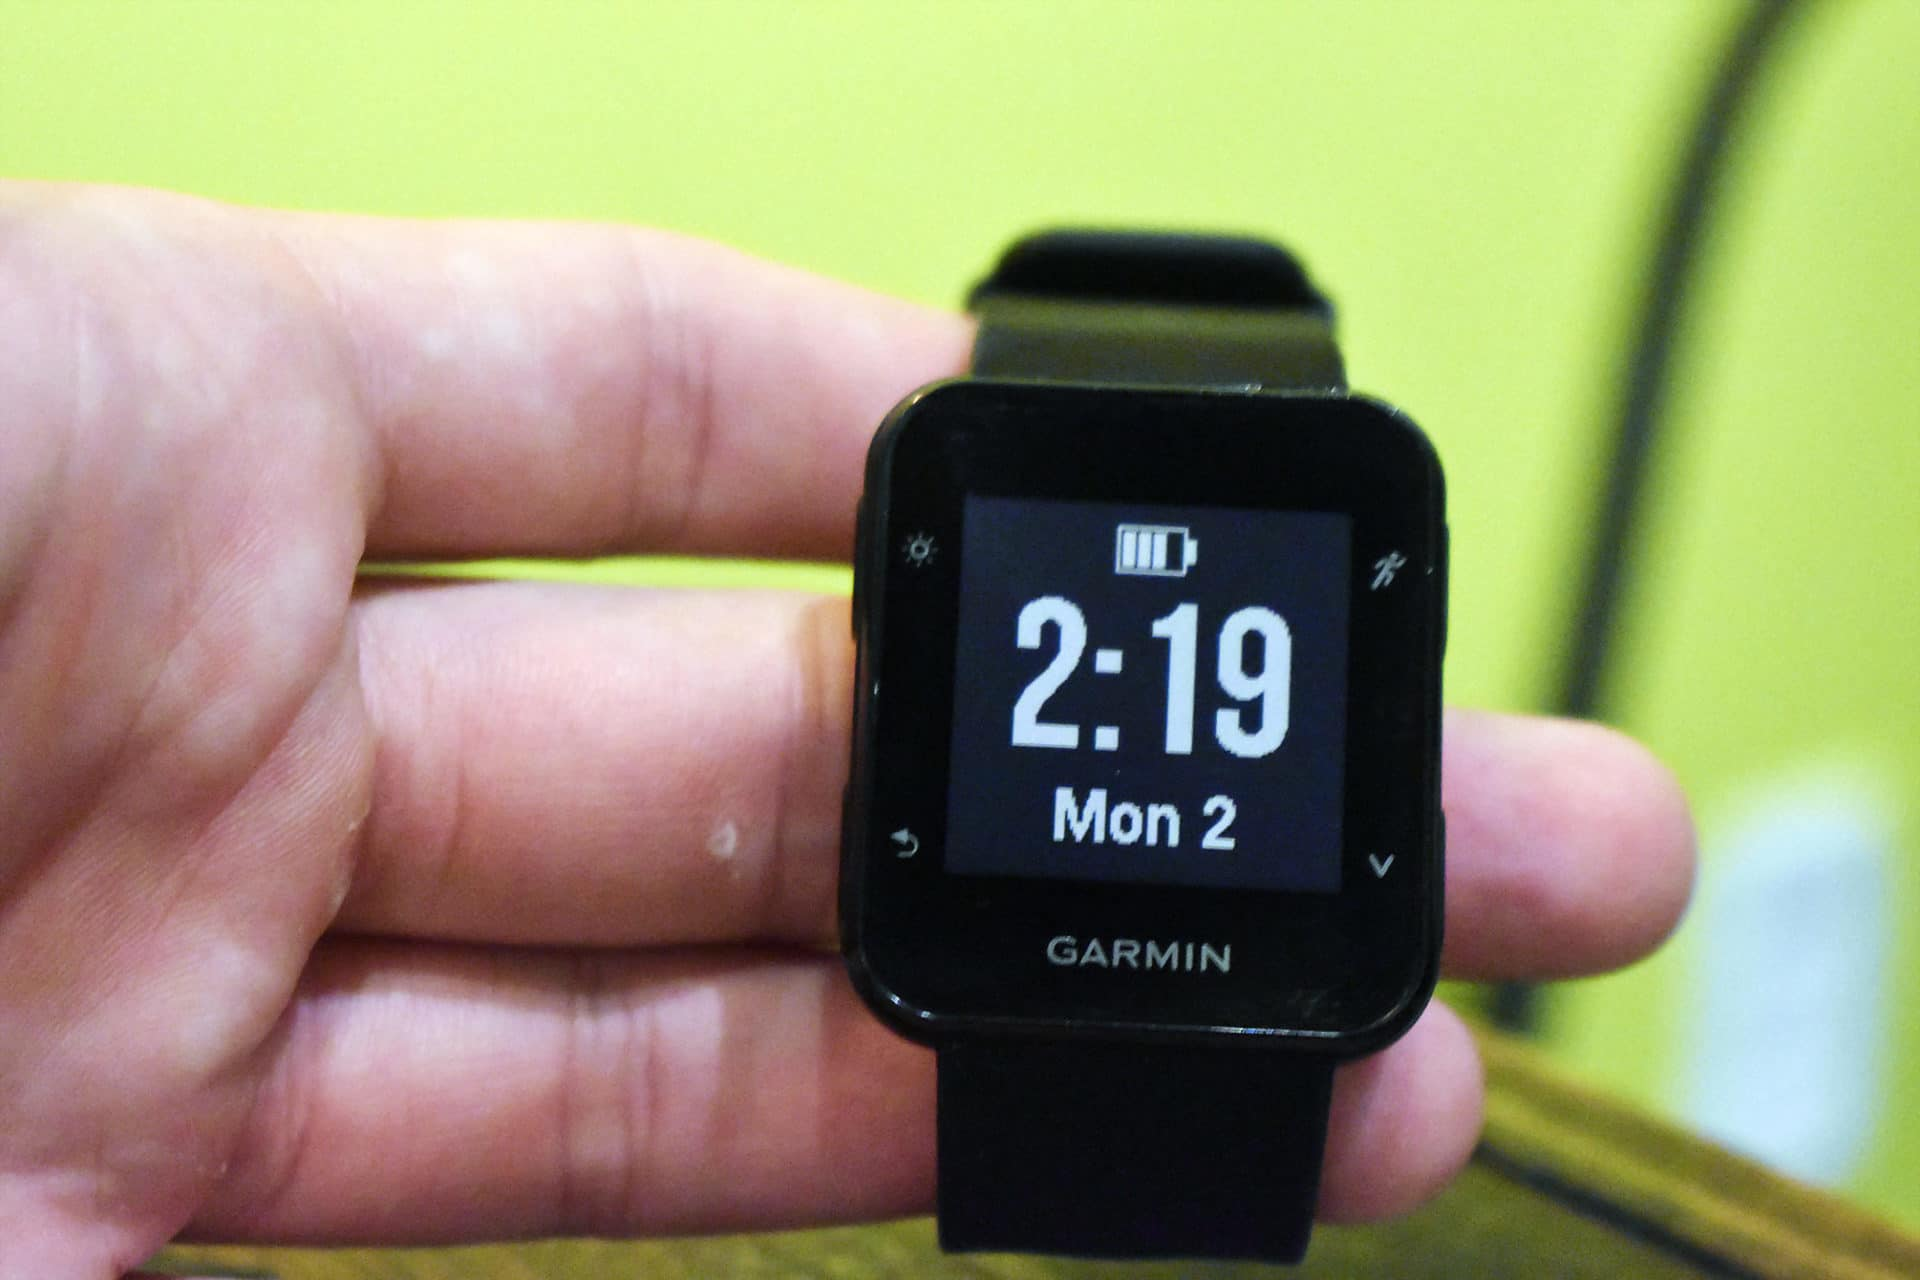 Garmin Forerunner 35 time and date display